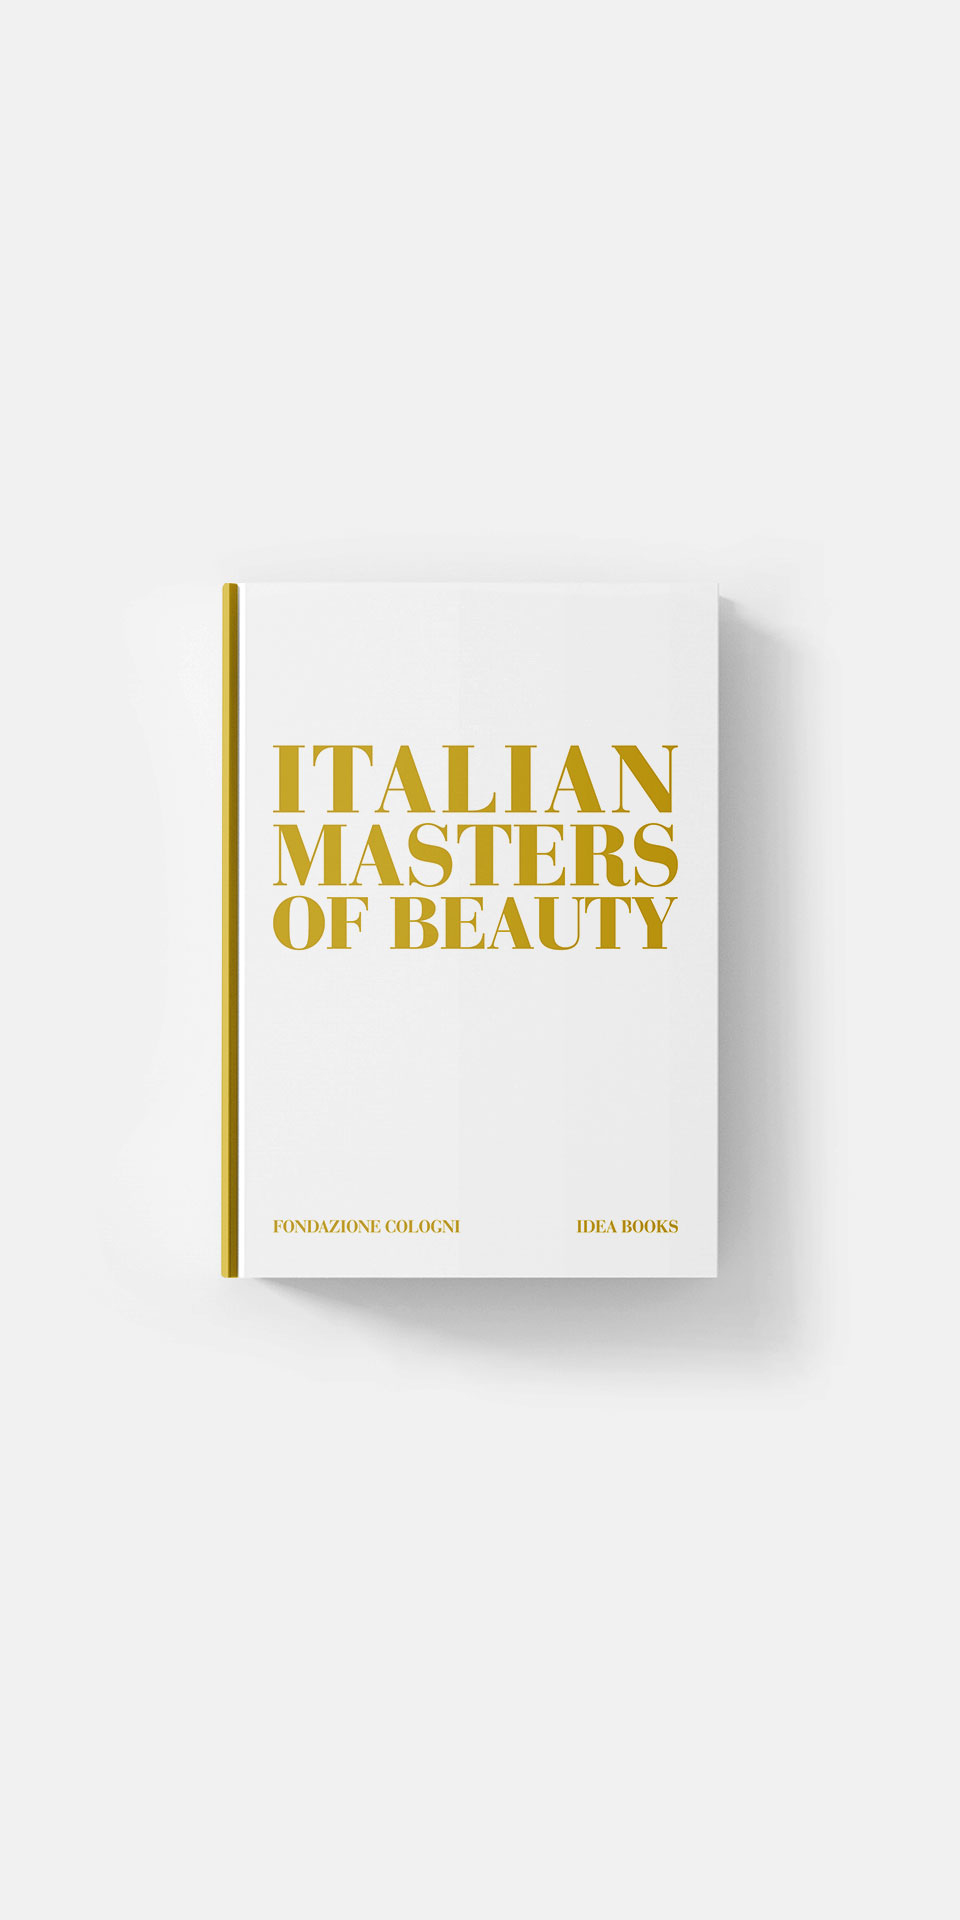 ITALIAN MASTERS OF BEAUTY